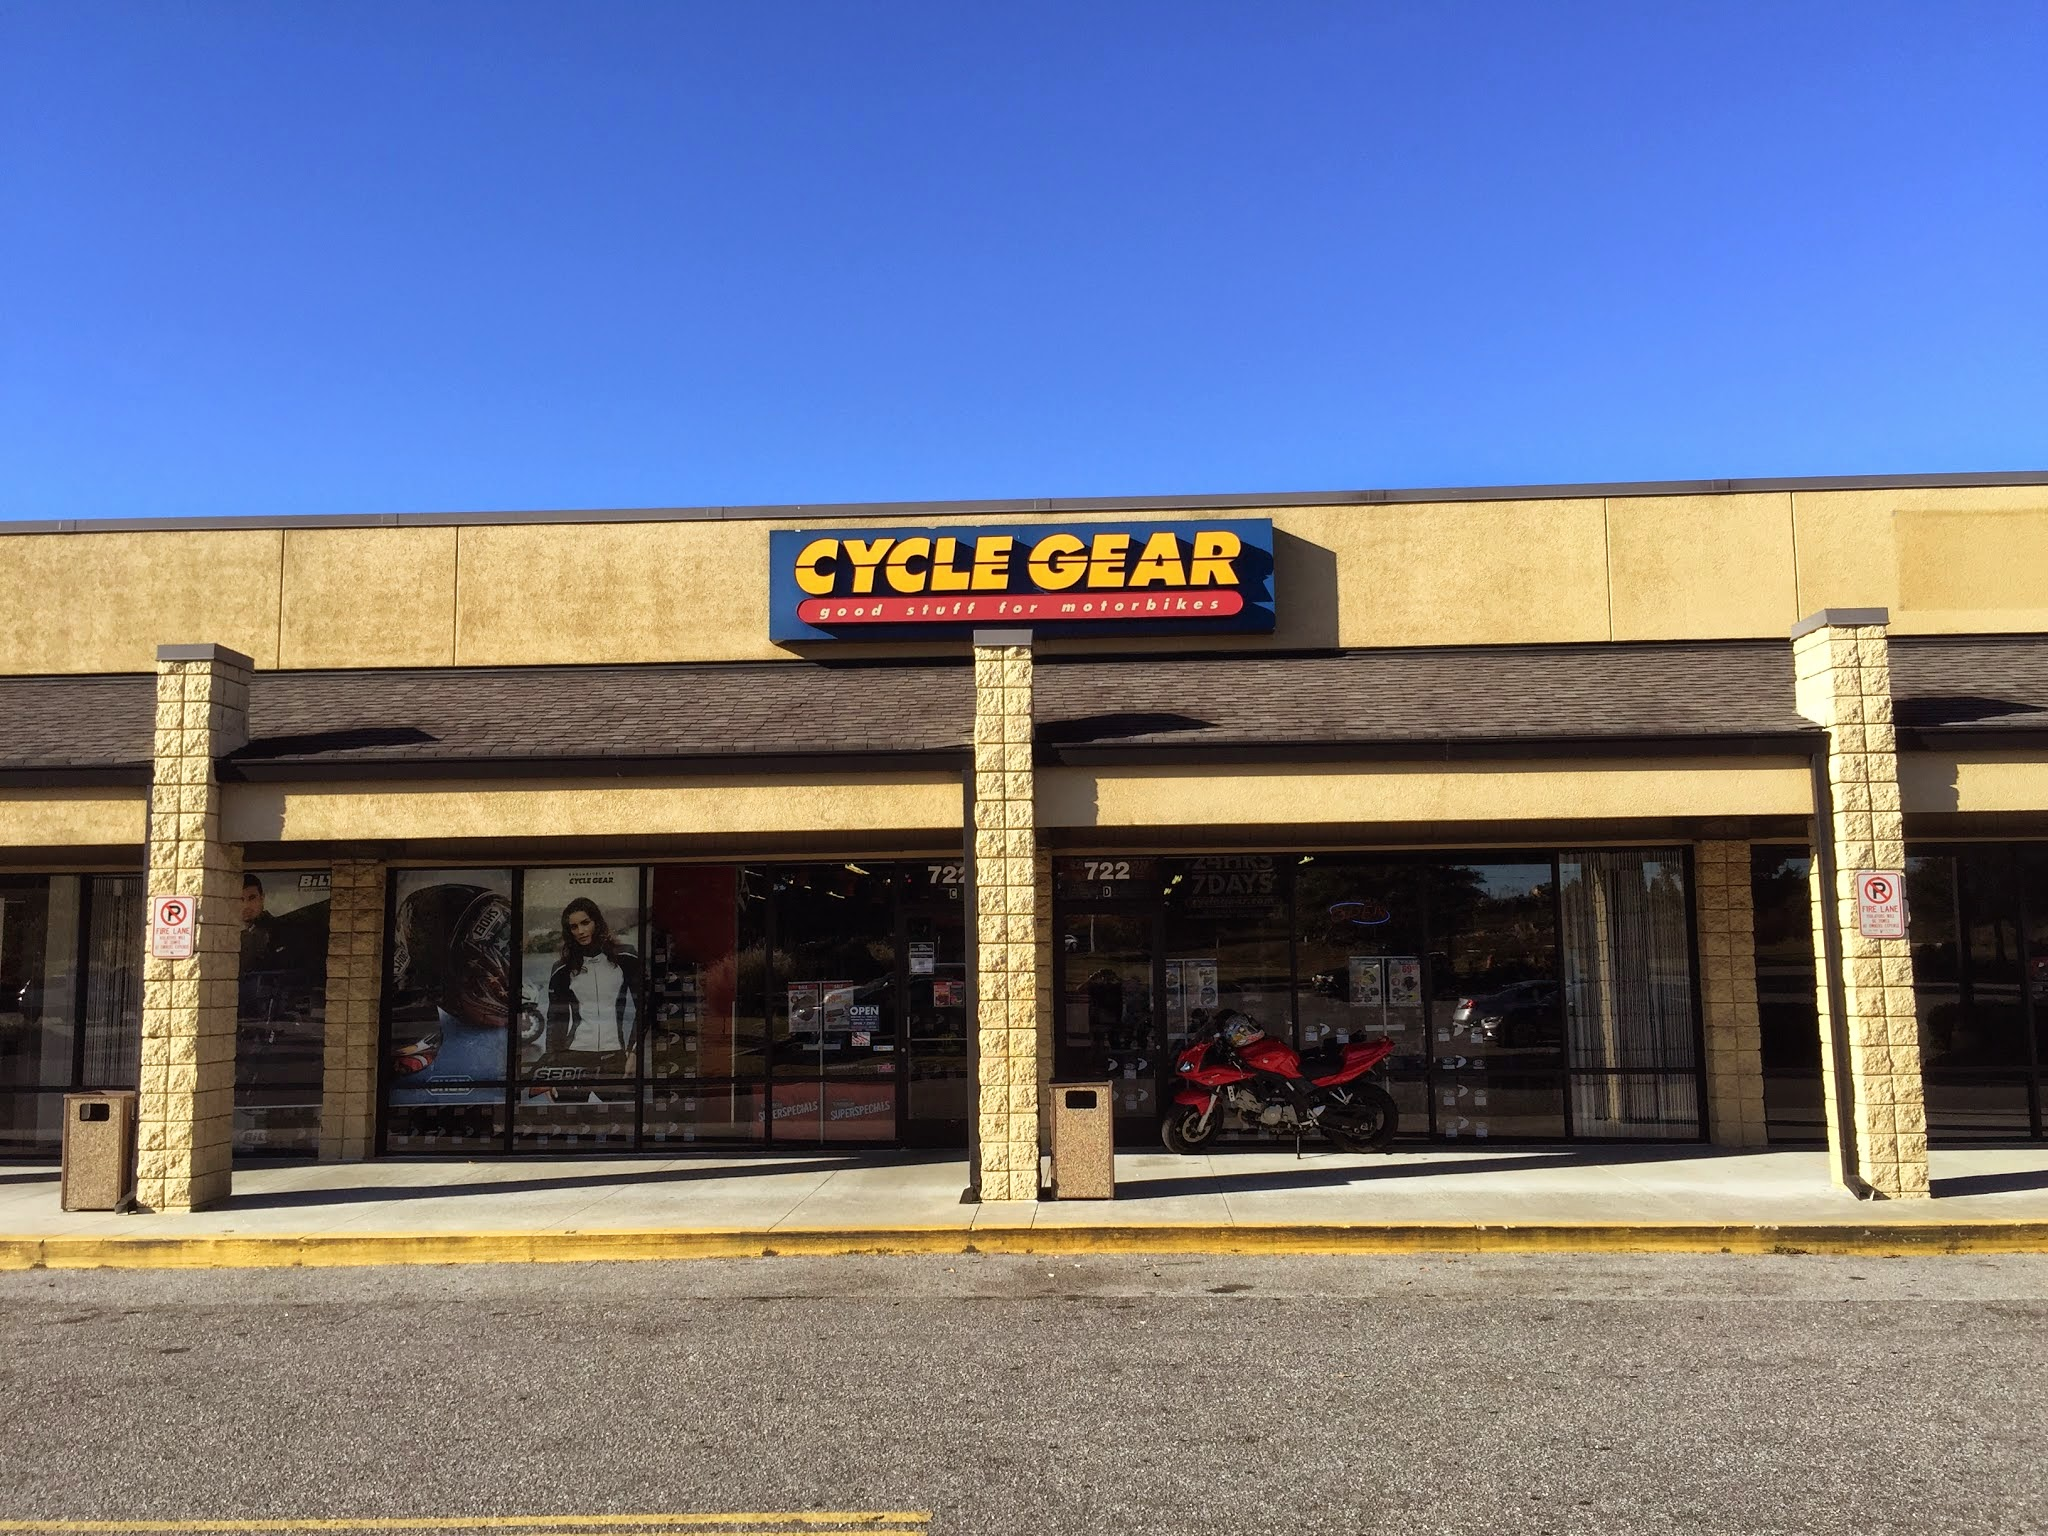 Motorcycle Stores Near Me >> Cycle Gear Coupons Lawrenceville GA near me | 8coupons